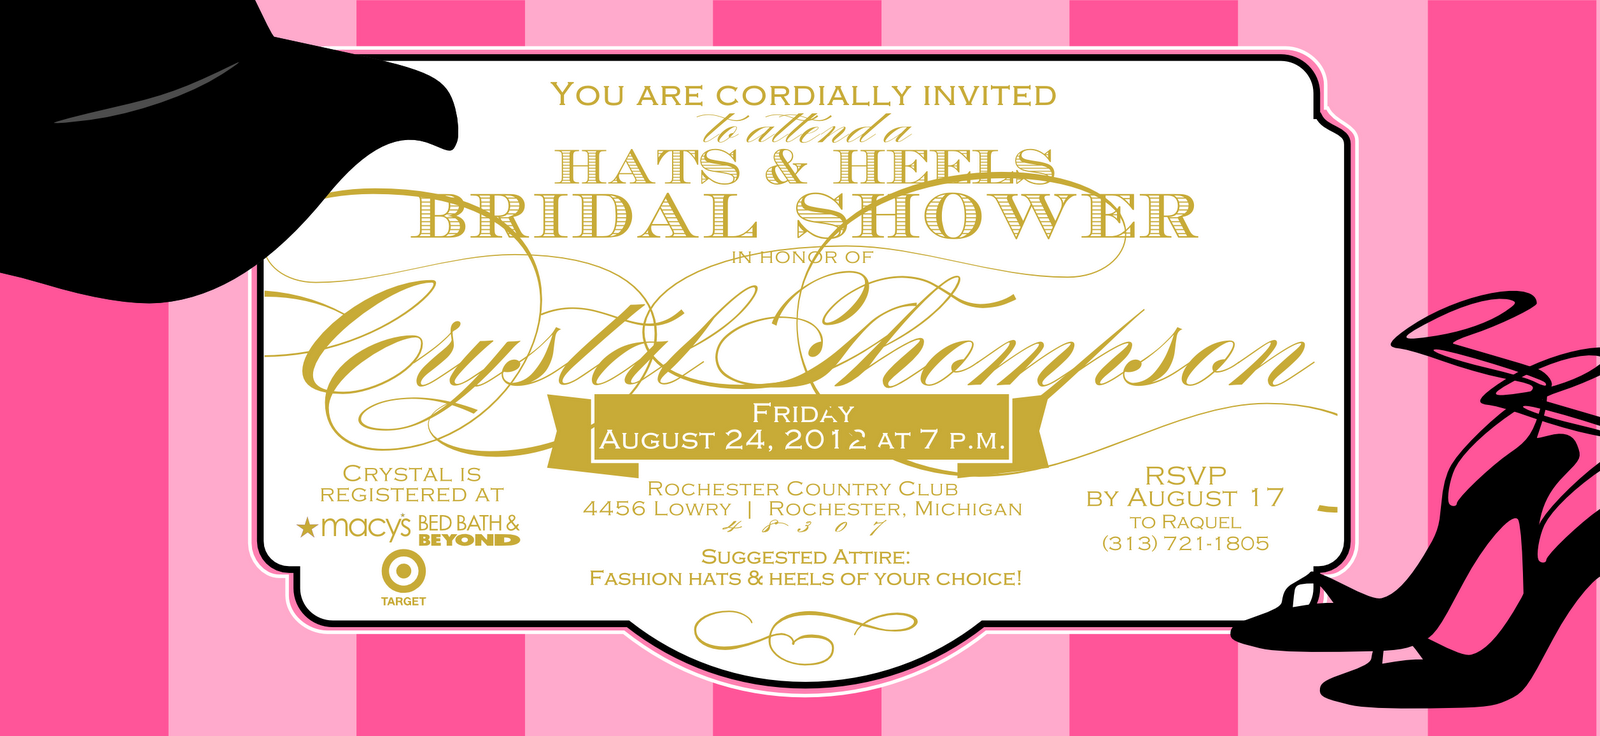 Bridal shower invite for Crystal